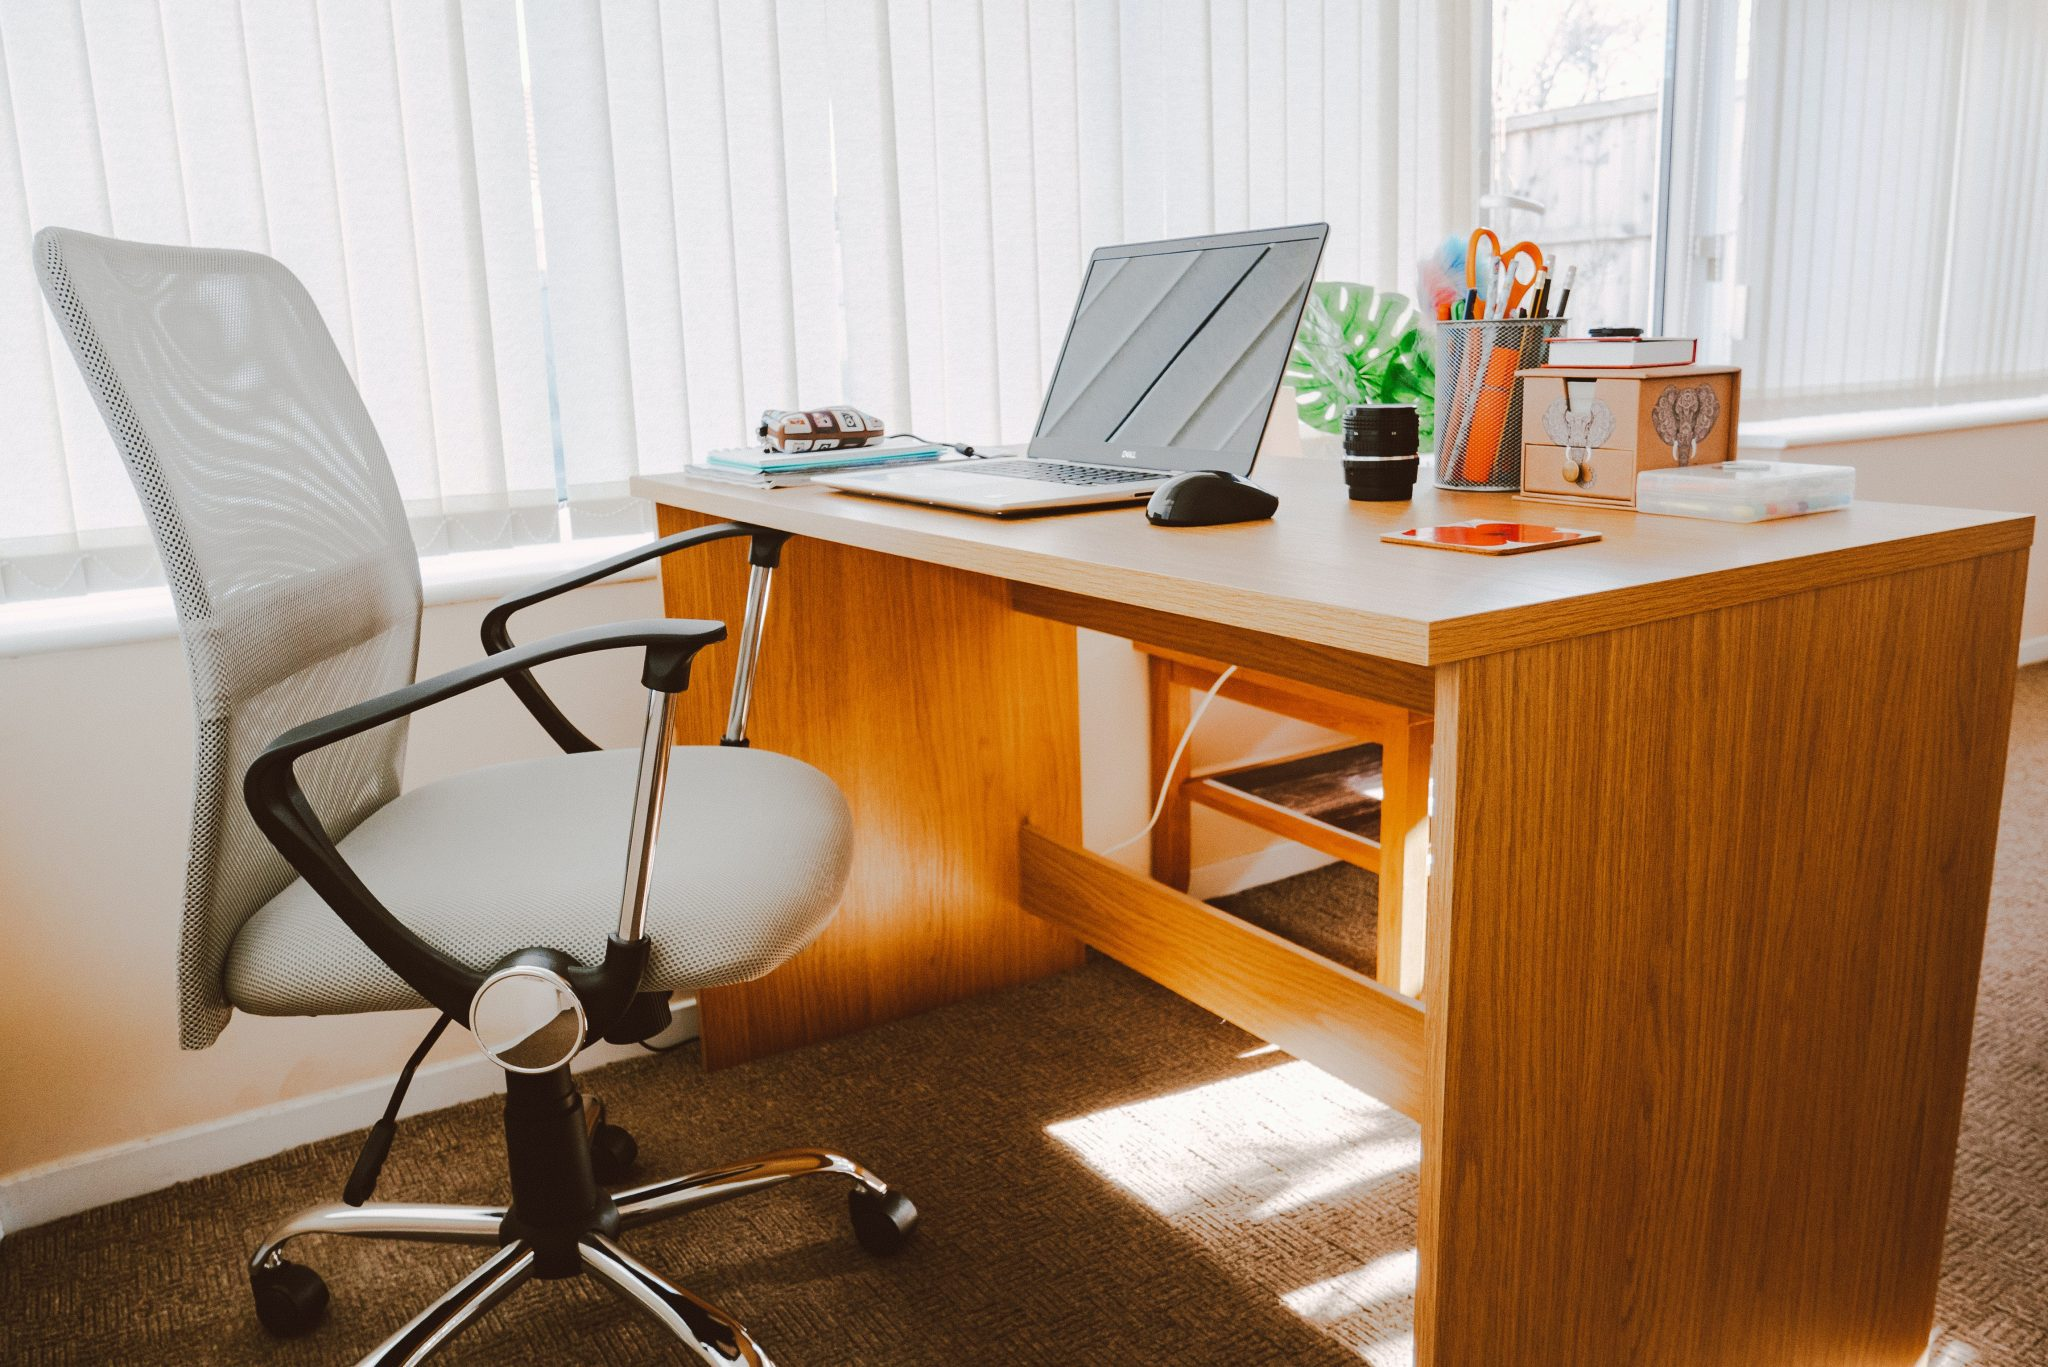 5 Practical Tips for Keeping Your Team Organized